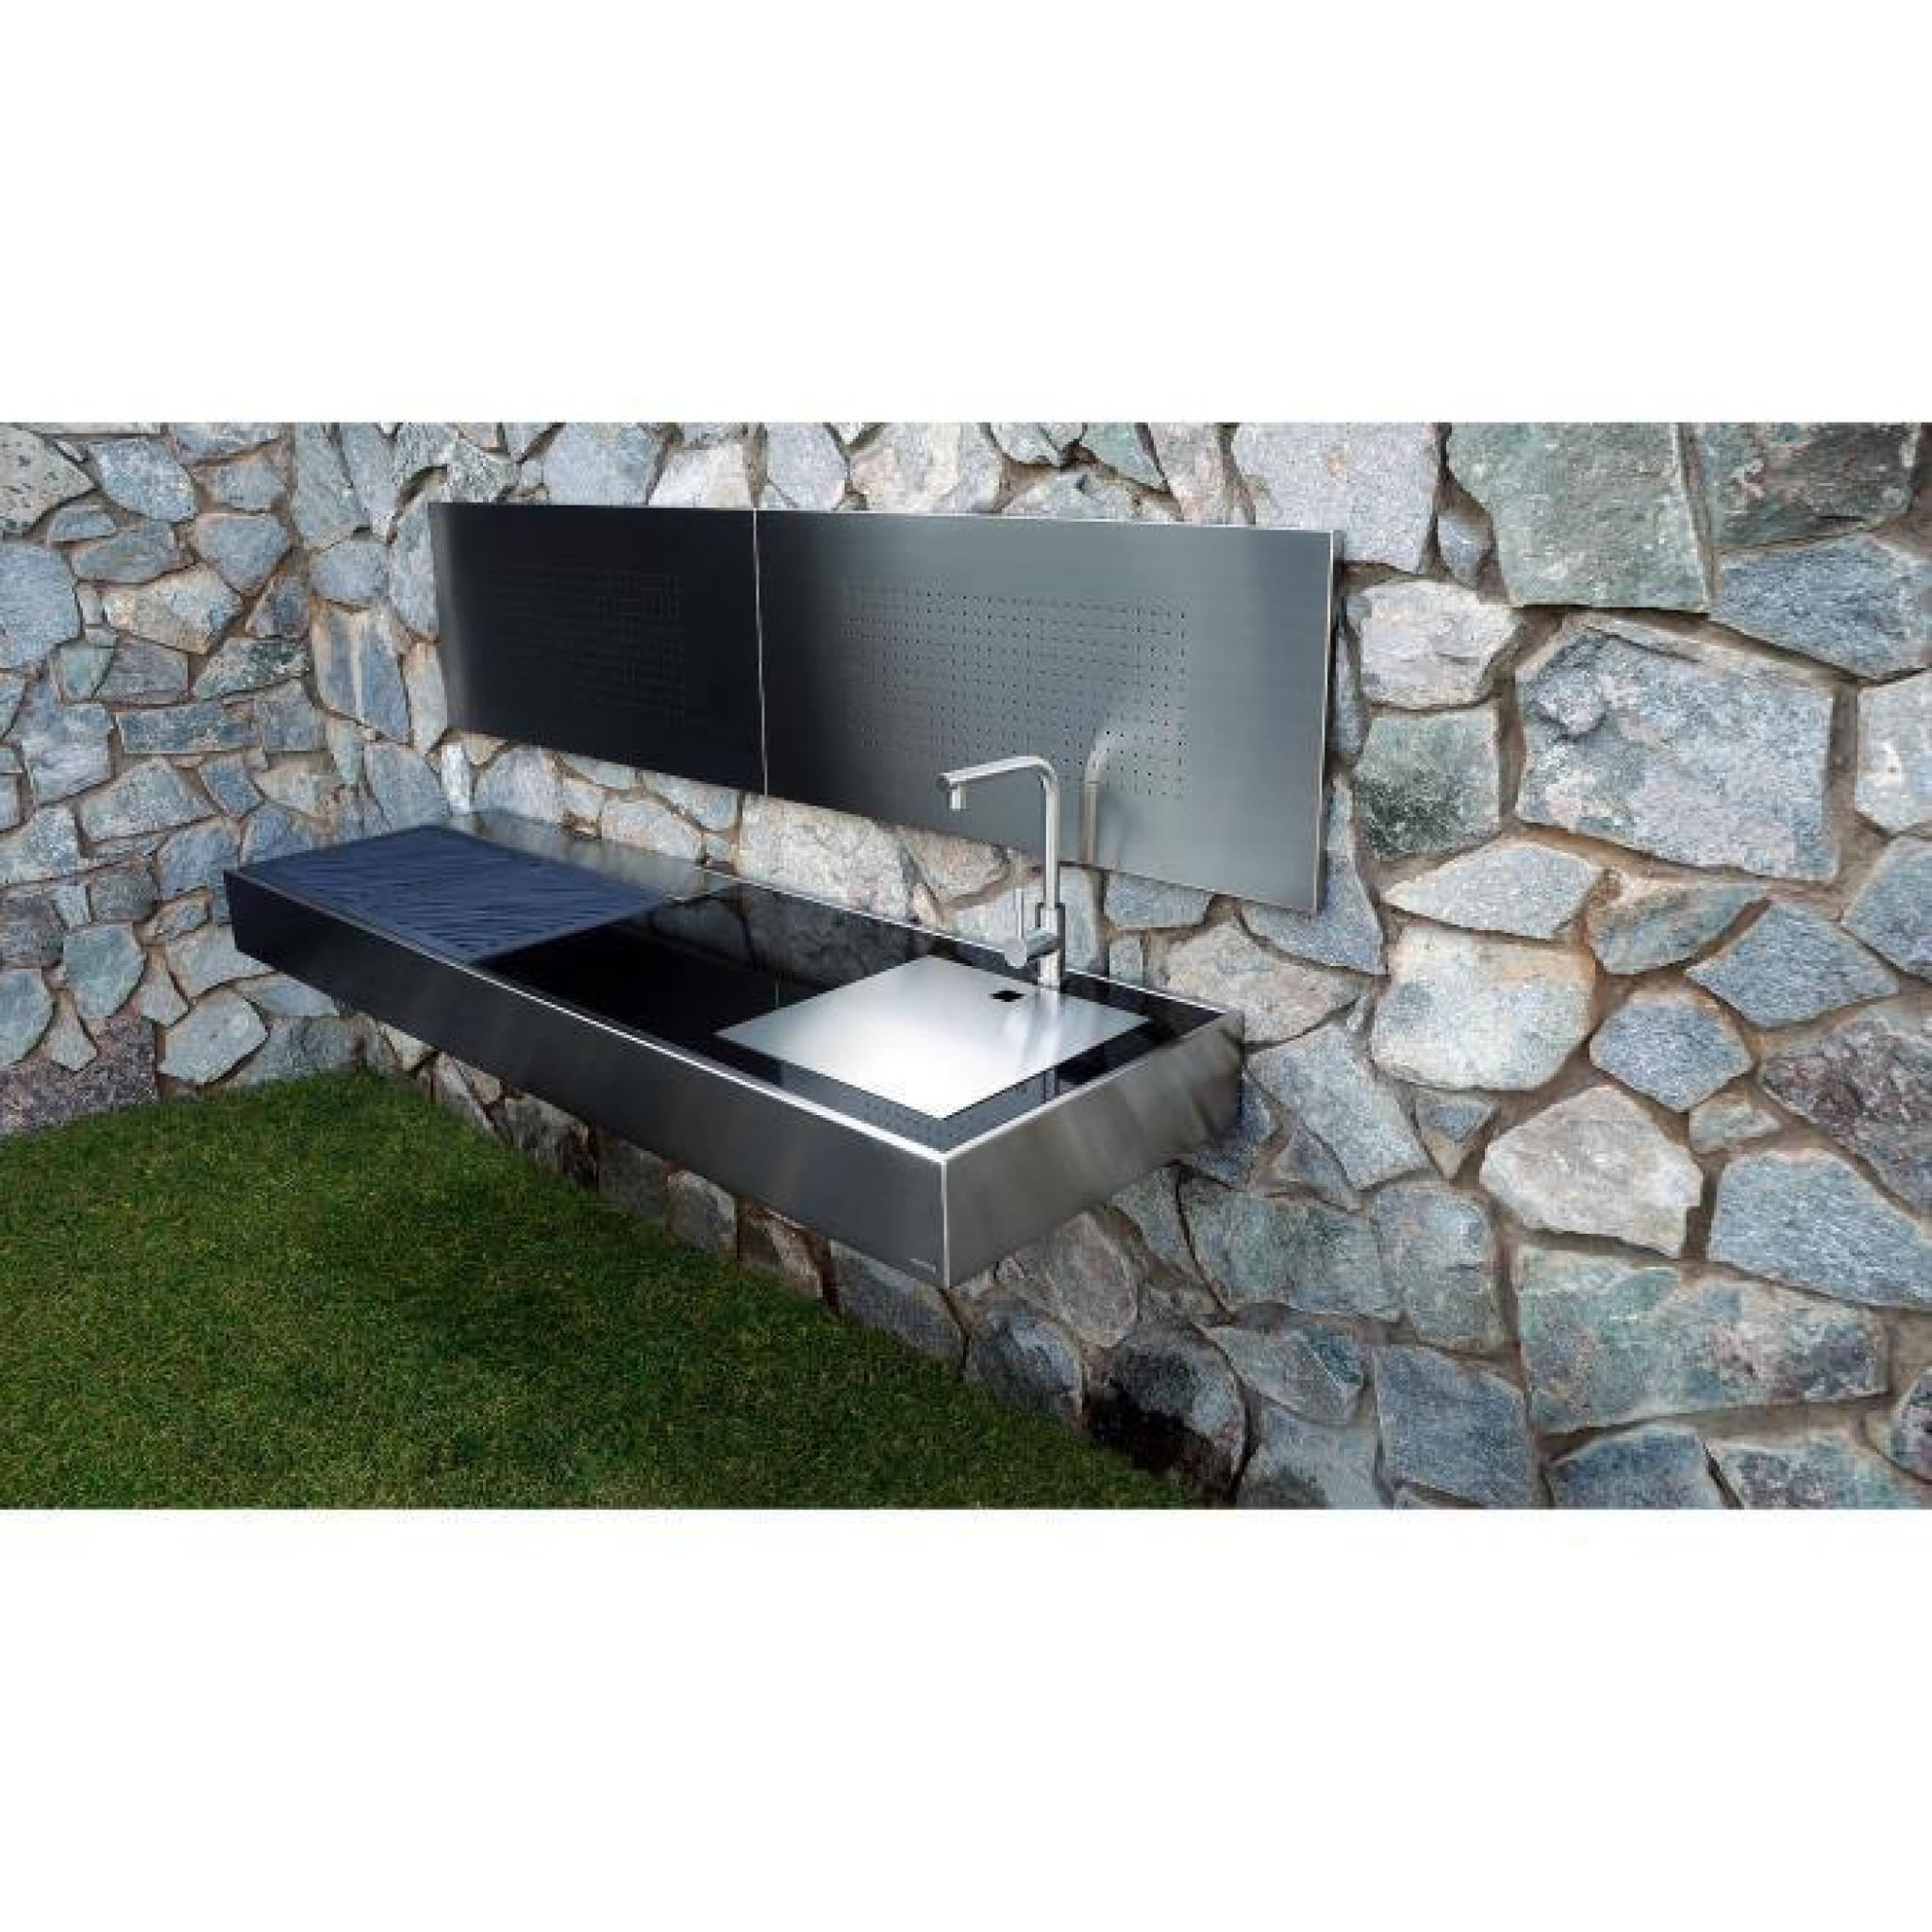 KRAKATOA ELITE ELEGANCE, BARBECUE MURAL AU CHARBON, DESIGN CONTEMPORAIN